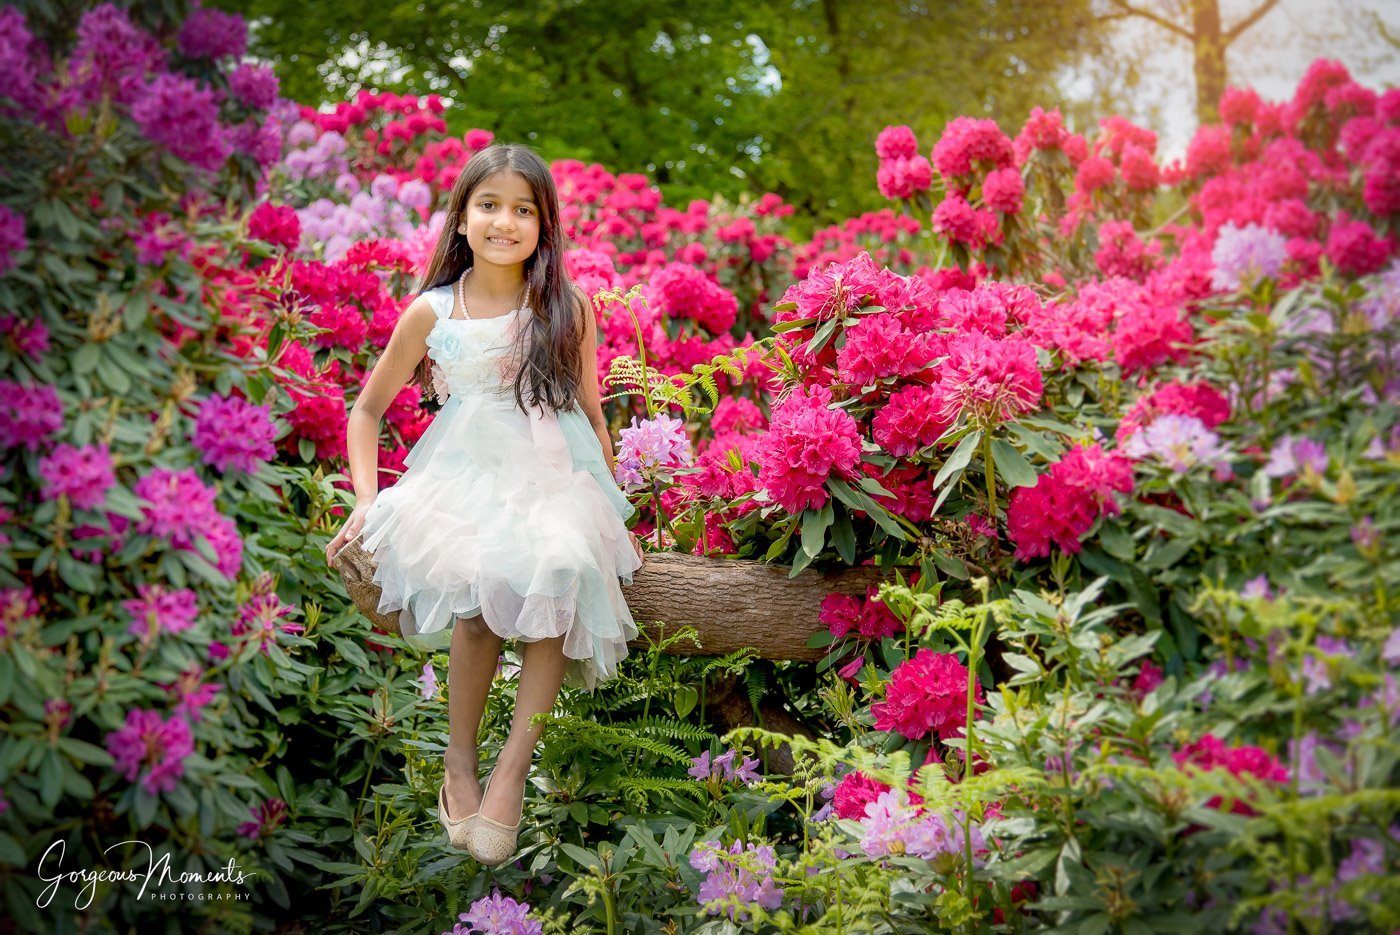 Beautiful young girl in white dress sitting on a log surrounded with vivid rhododendrons